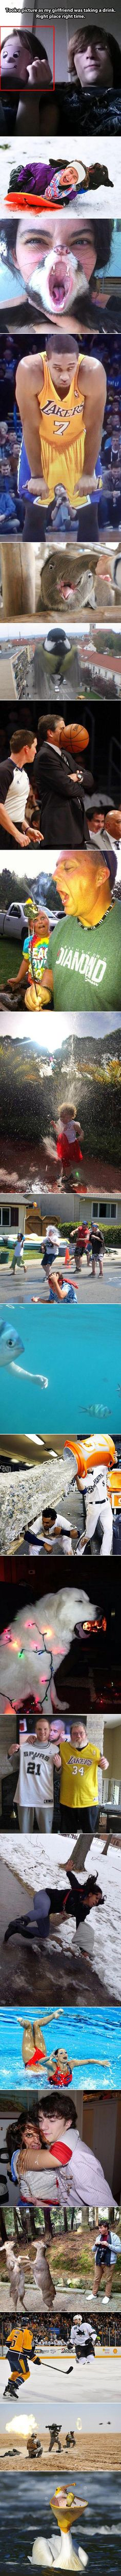 Pictures taken at just the right time